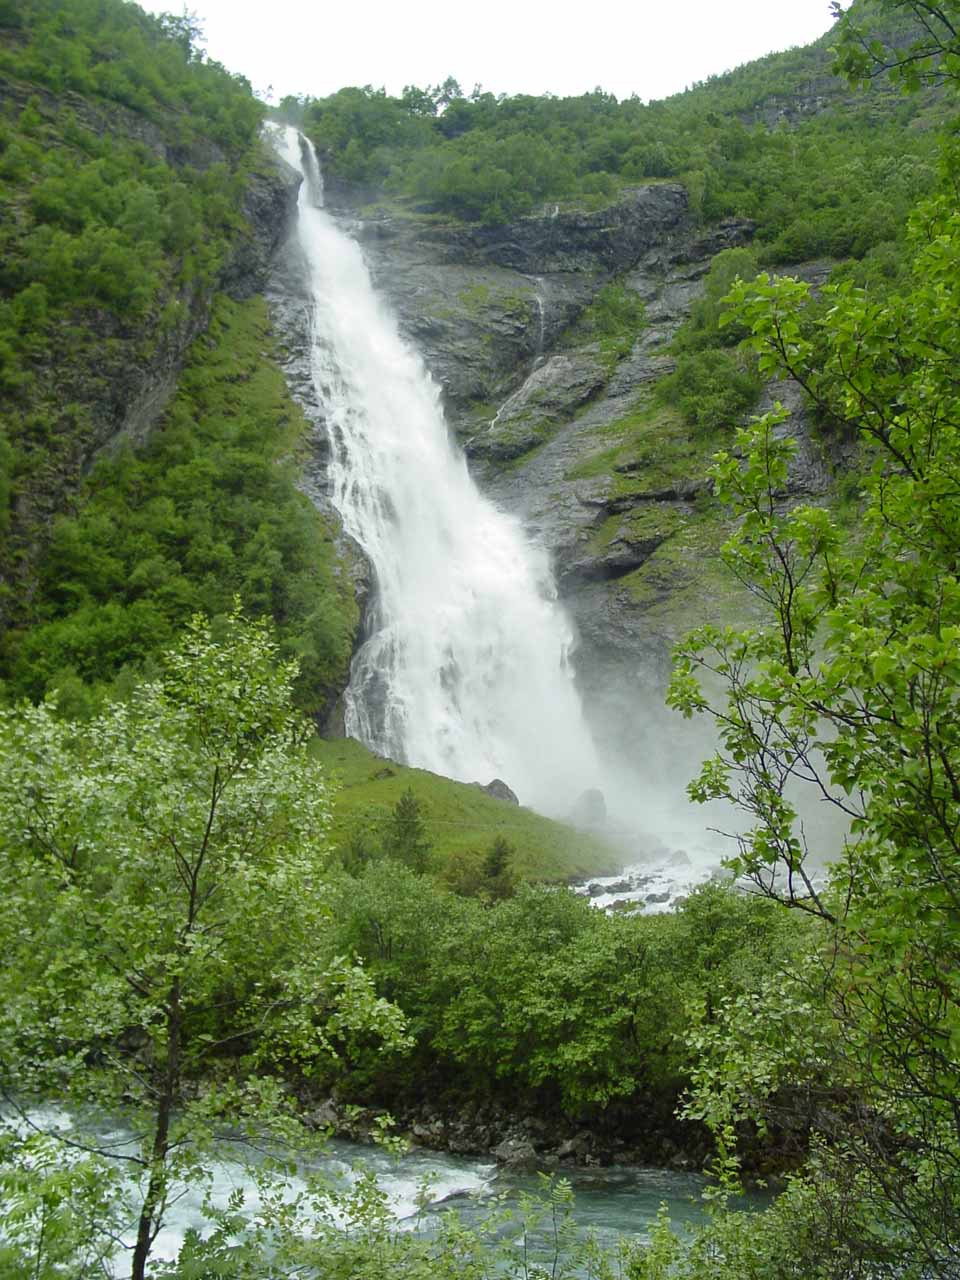 The viewing angle of Avdalsfossen changed as we continued walking the trail